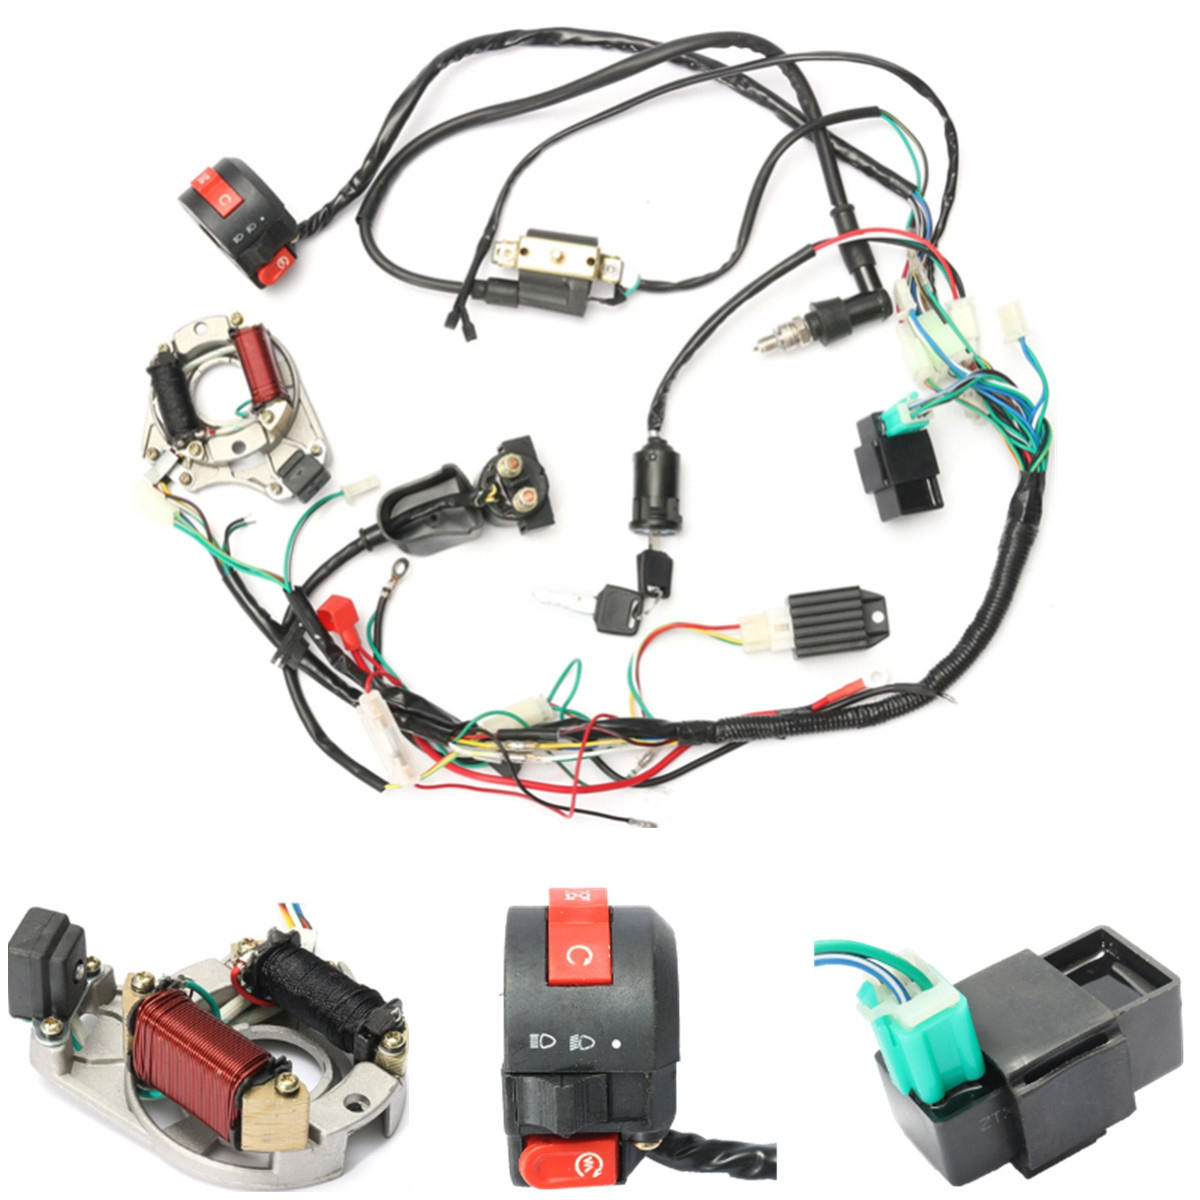 hight resolution of 50cc 70cc 90cc 110cc cdi wire harness assembly wiring kit atv50cc 70cc 90cc 110cc cdi wire